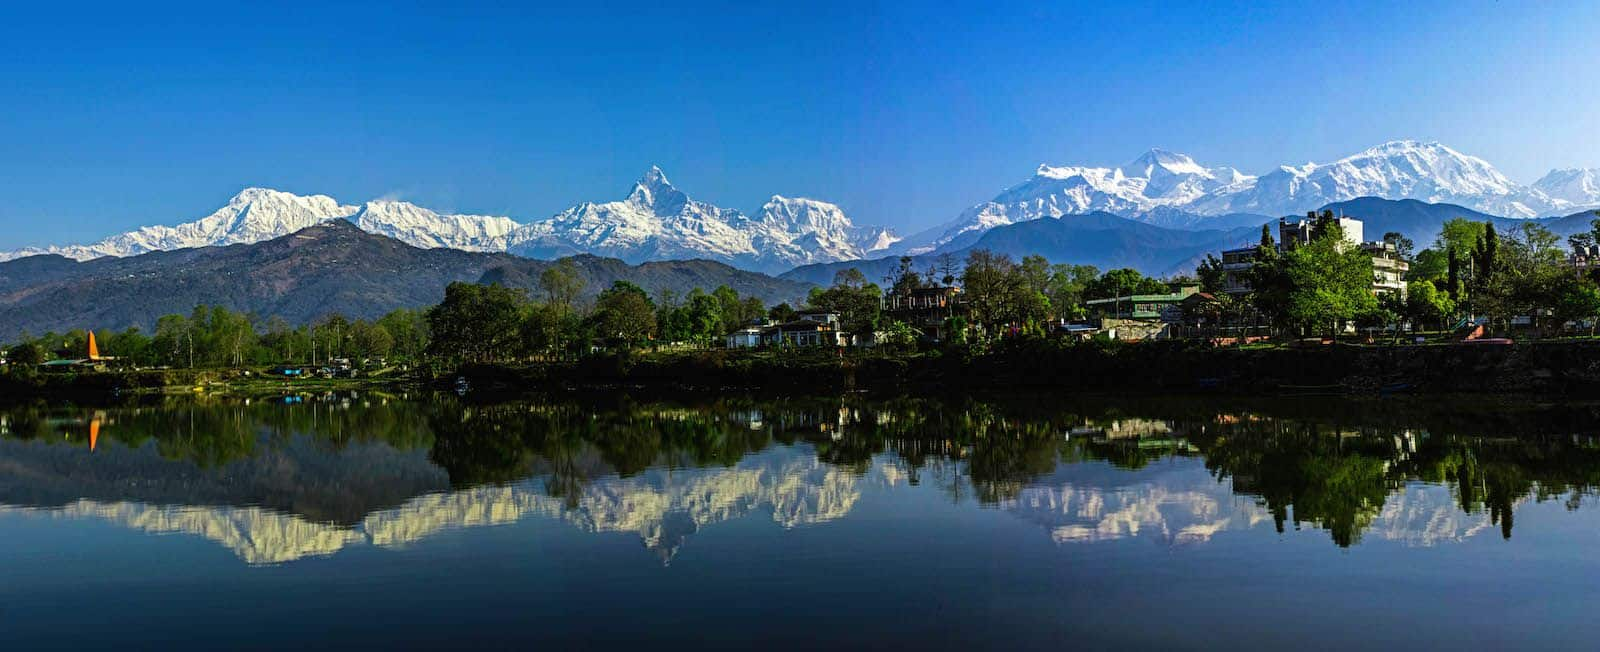 Pokhara Day Tour with Sarangkot Sunrise